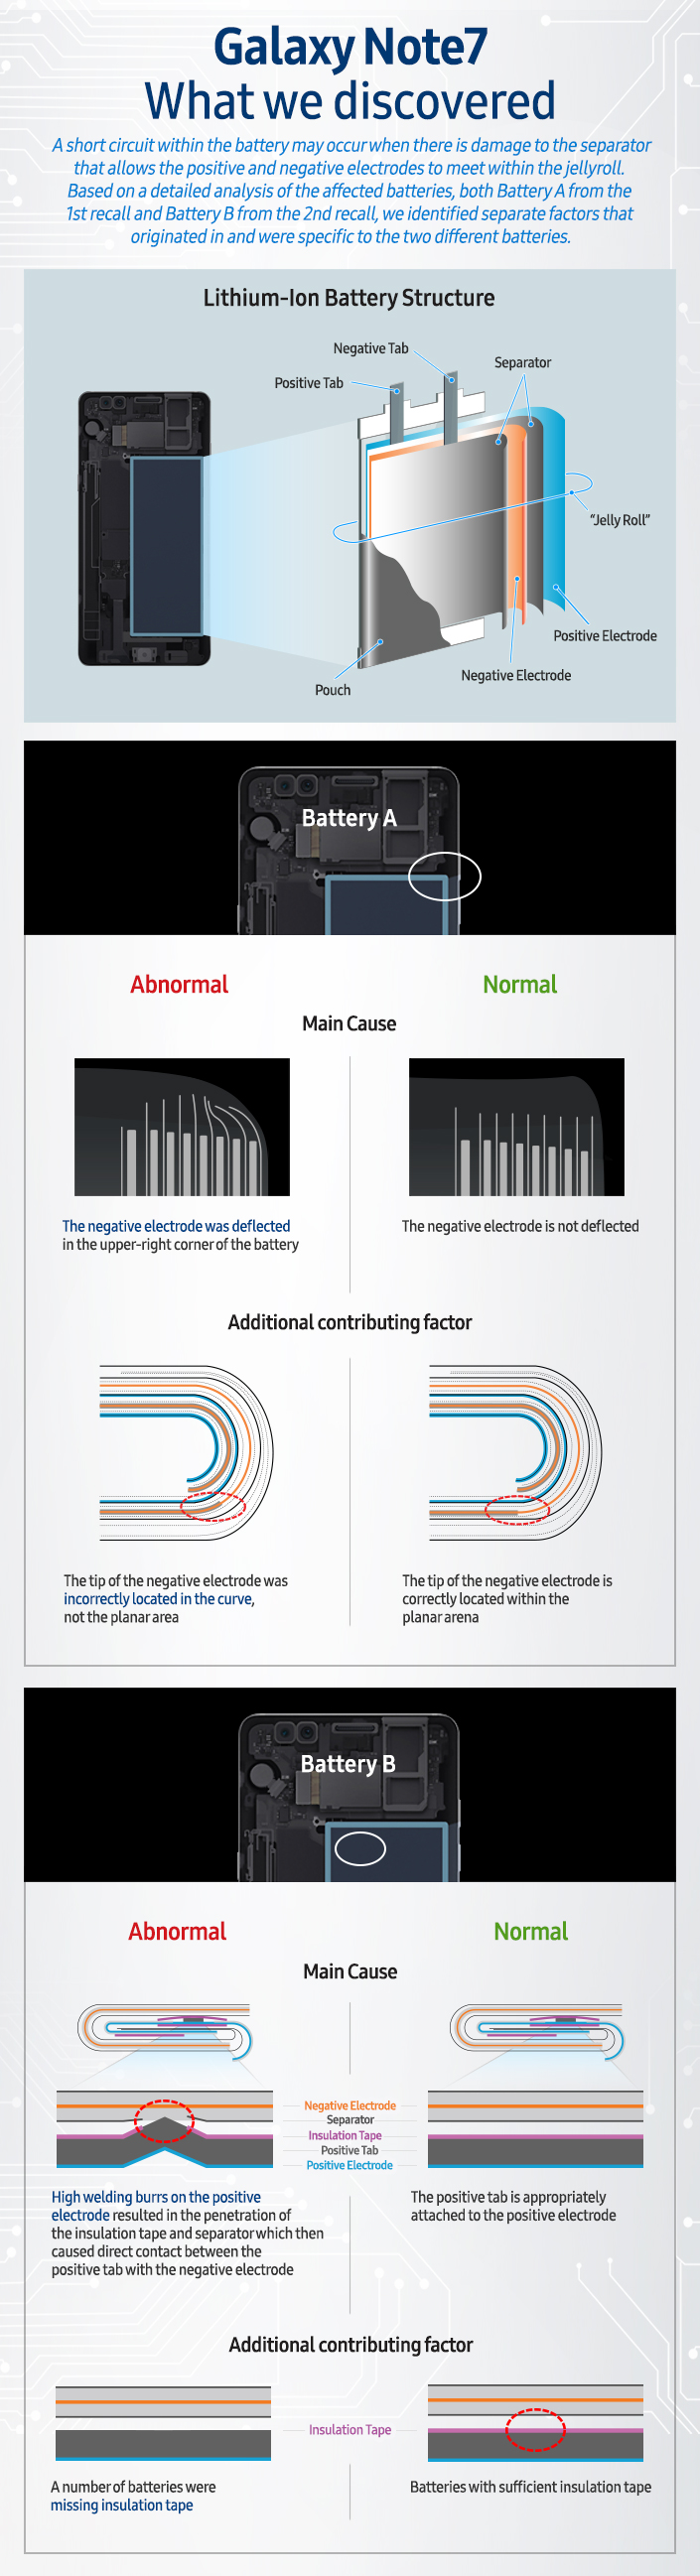 [Infographic] Galaxy Note7 What We Discovered